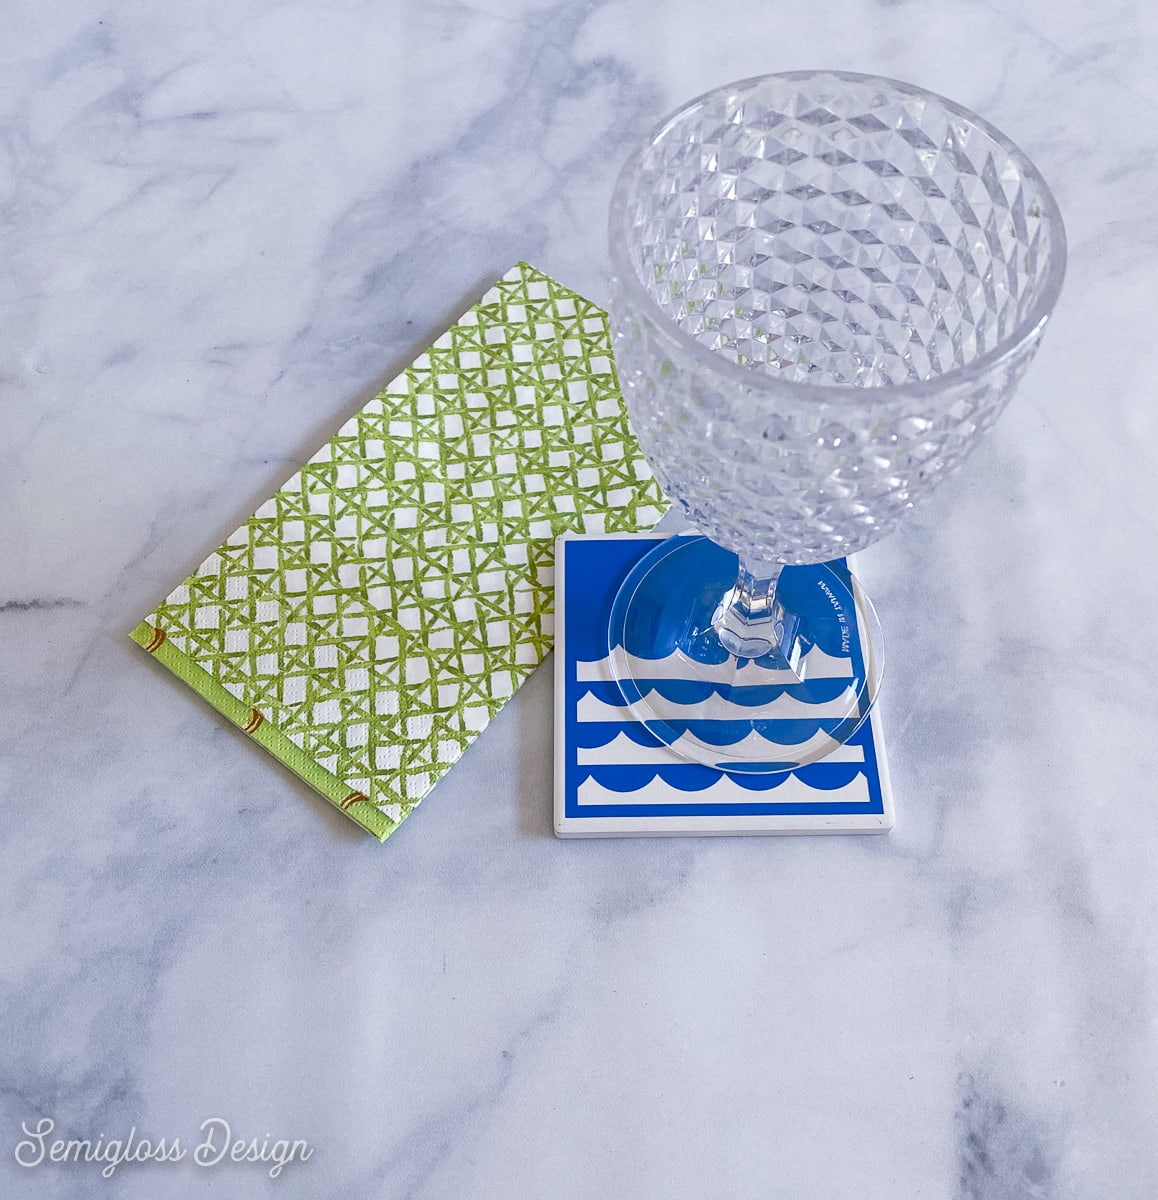 glass and coaster with blue waves